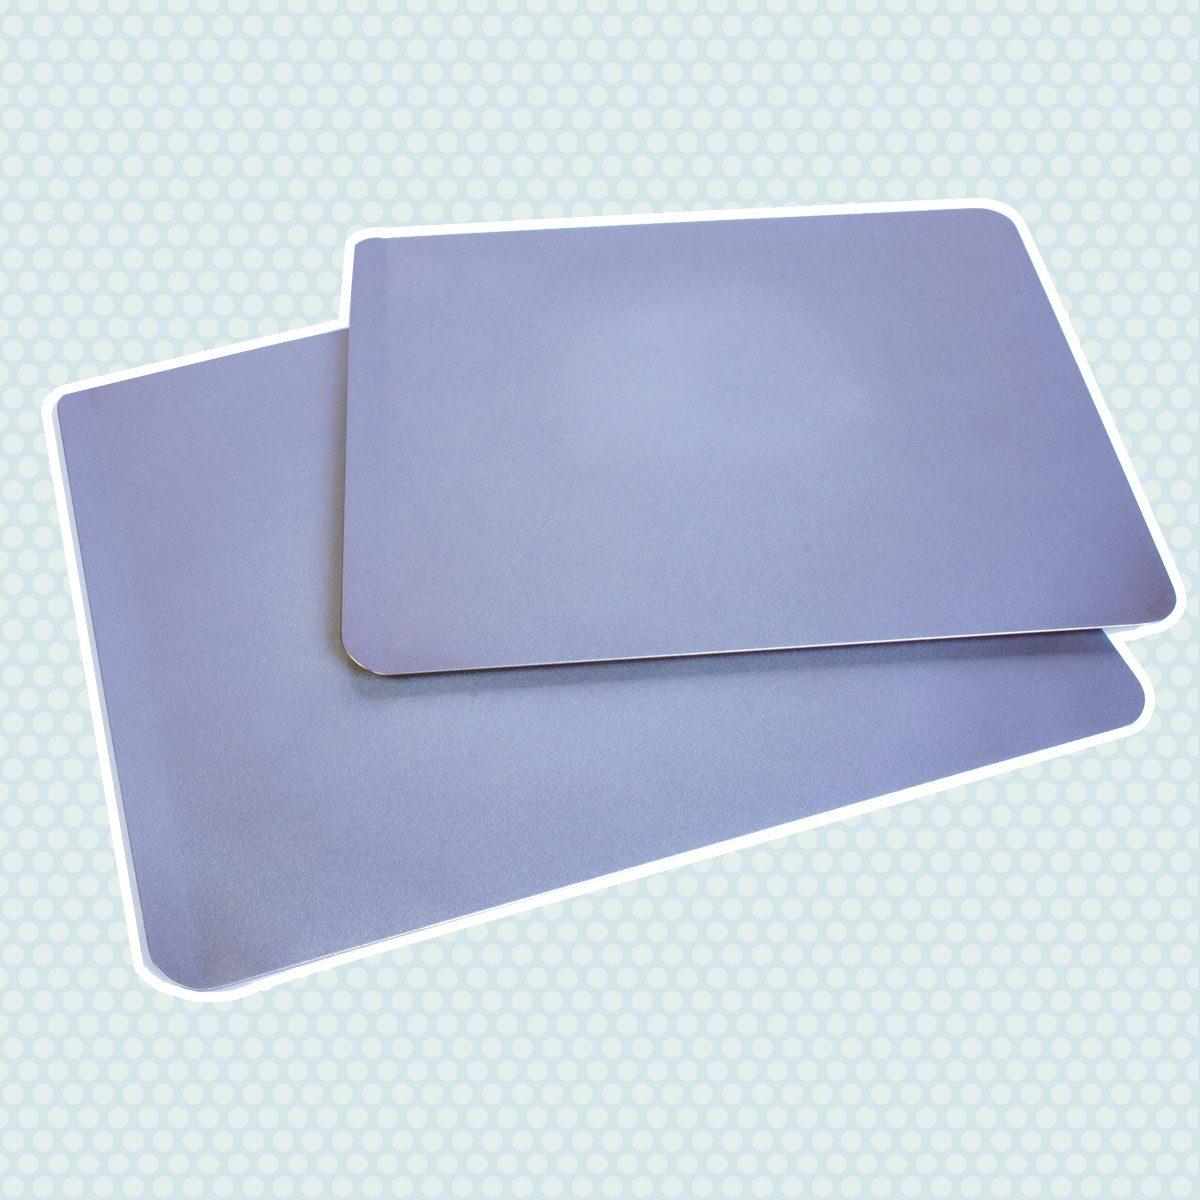 Crofton 2-Pack Insulated Cookie Sheets